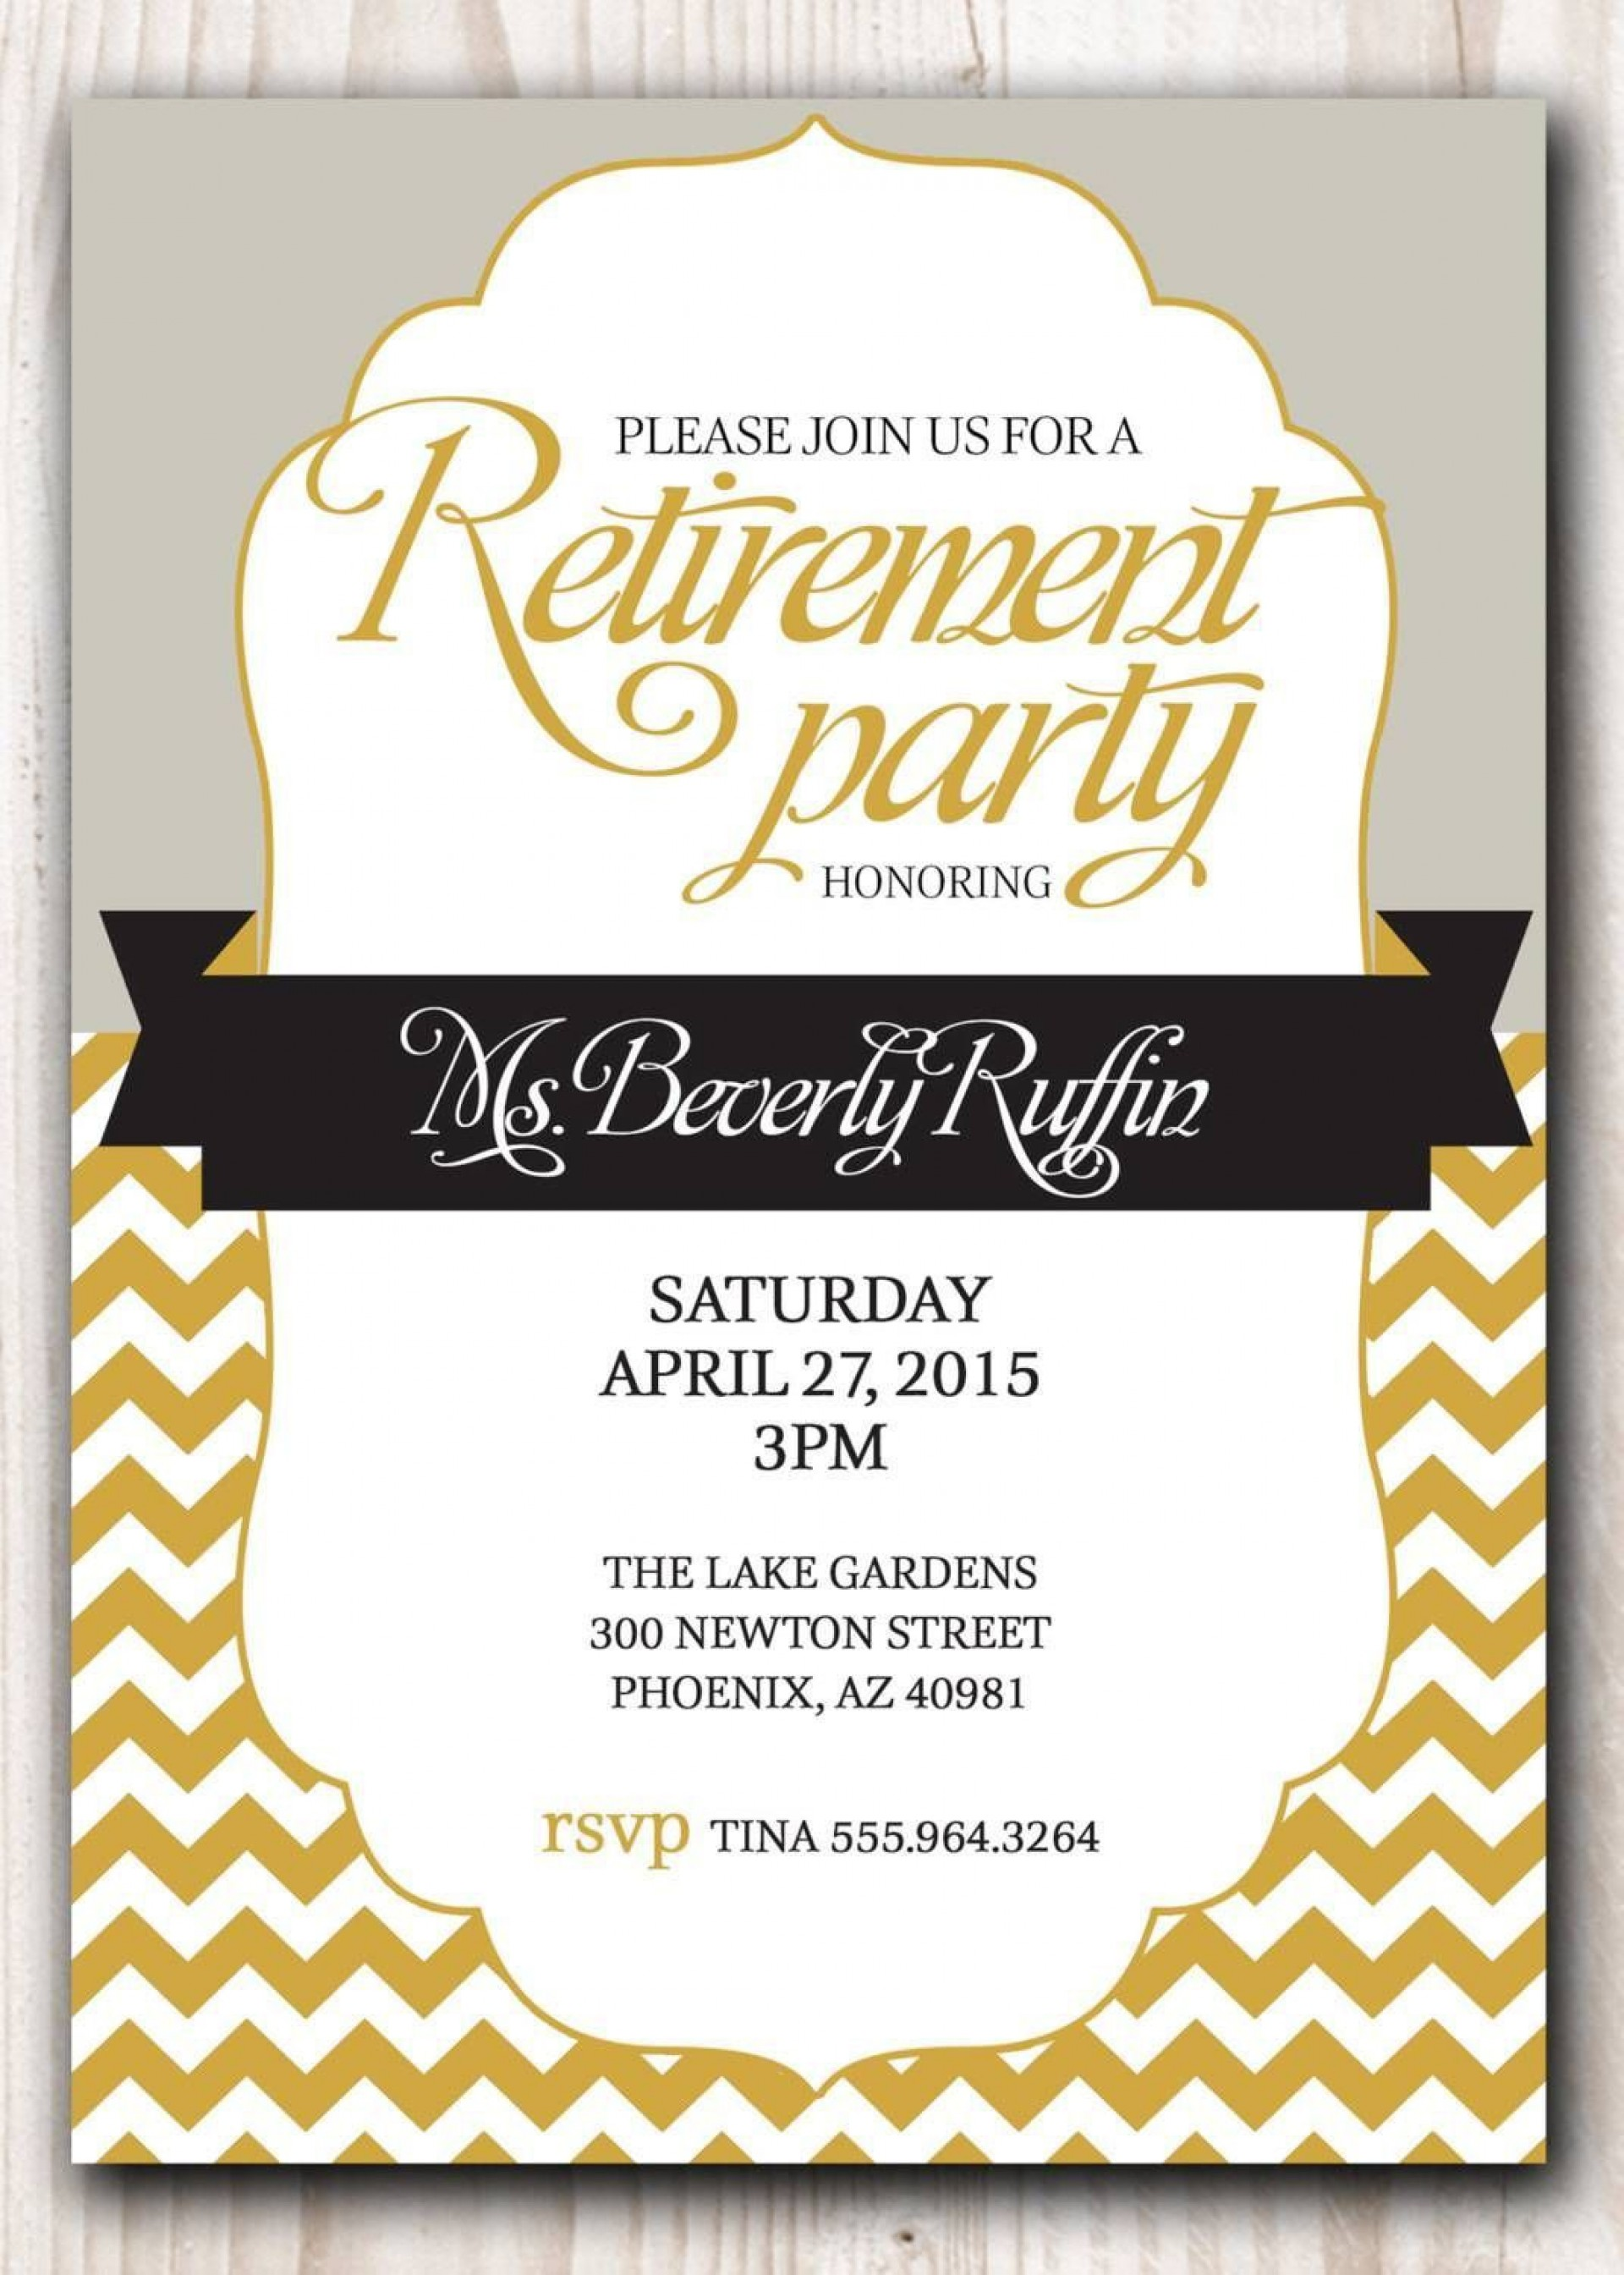 007 Awesome Retirement Invitation Template Free Highest Quality  Party Word Download1920